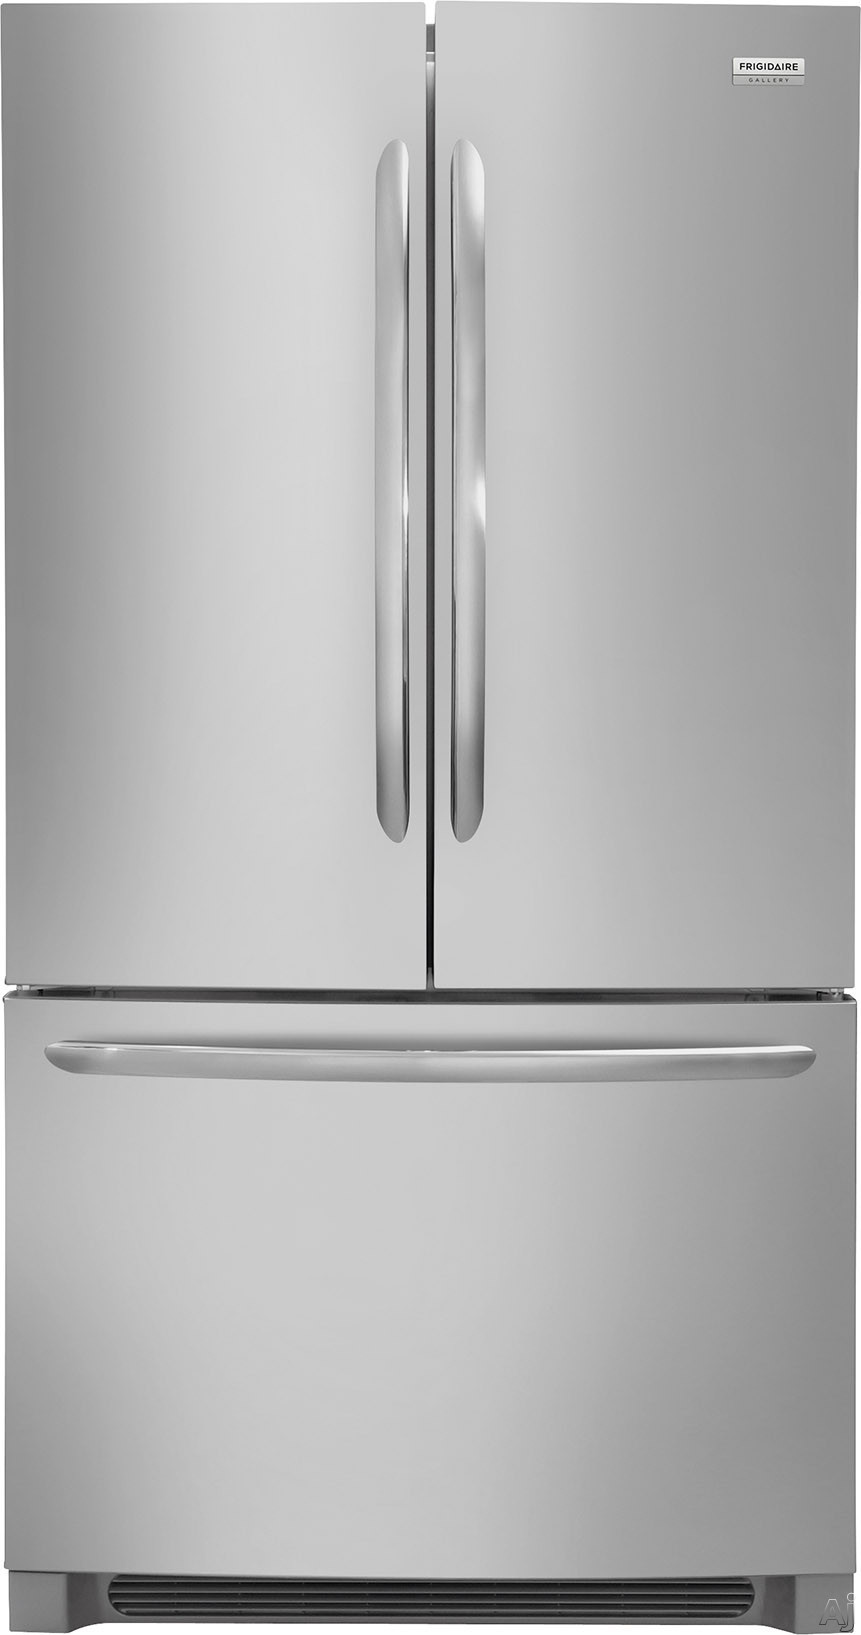 FGHG2368TF French Door Refrigerator with 22.4 cu. ft.  Even Temp  PureAir Ultra II Filters  and Effortless Glide Crisper Drawers in Stainless 852555